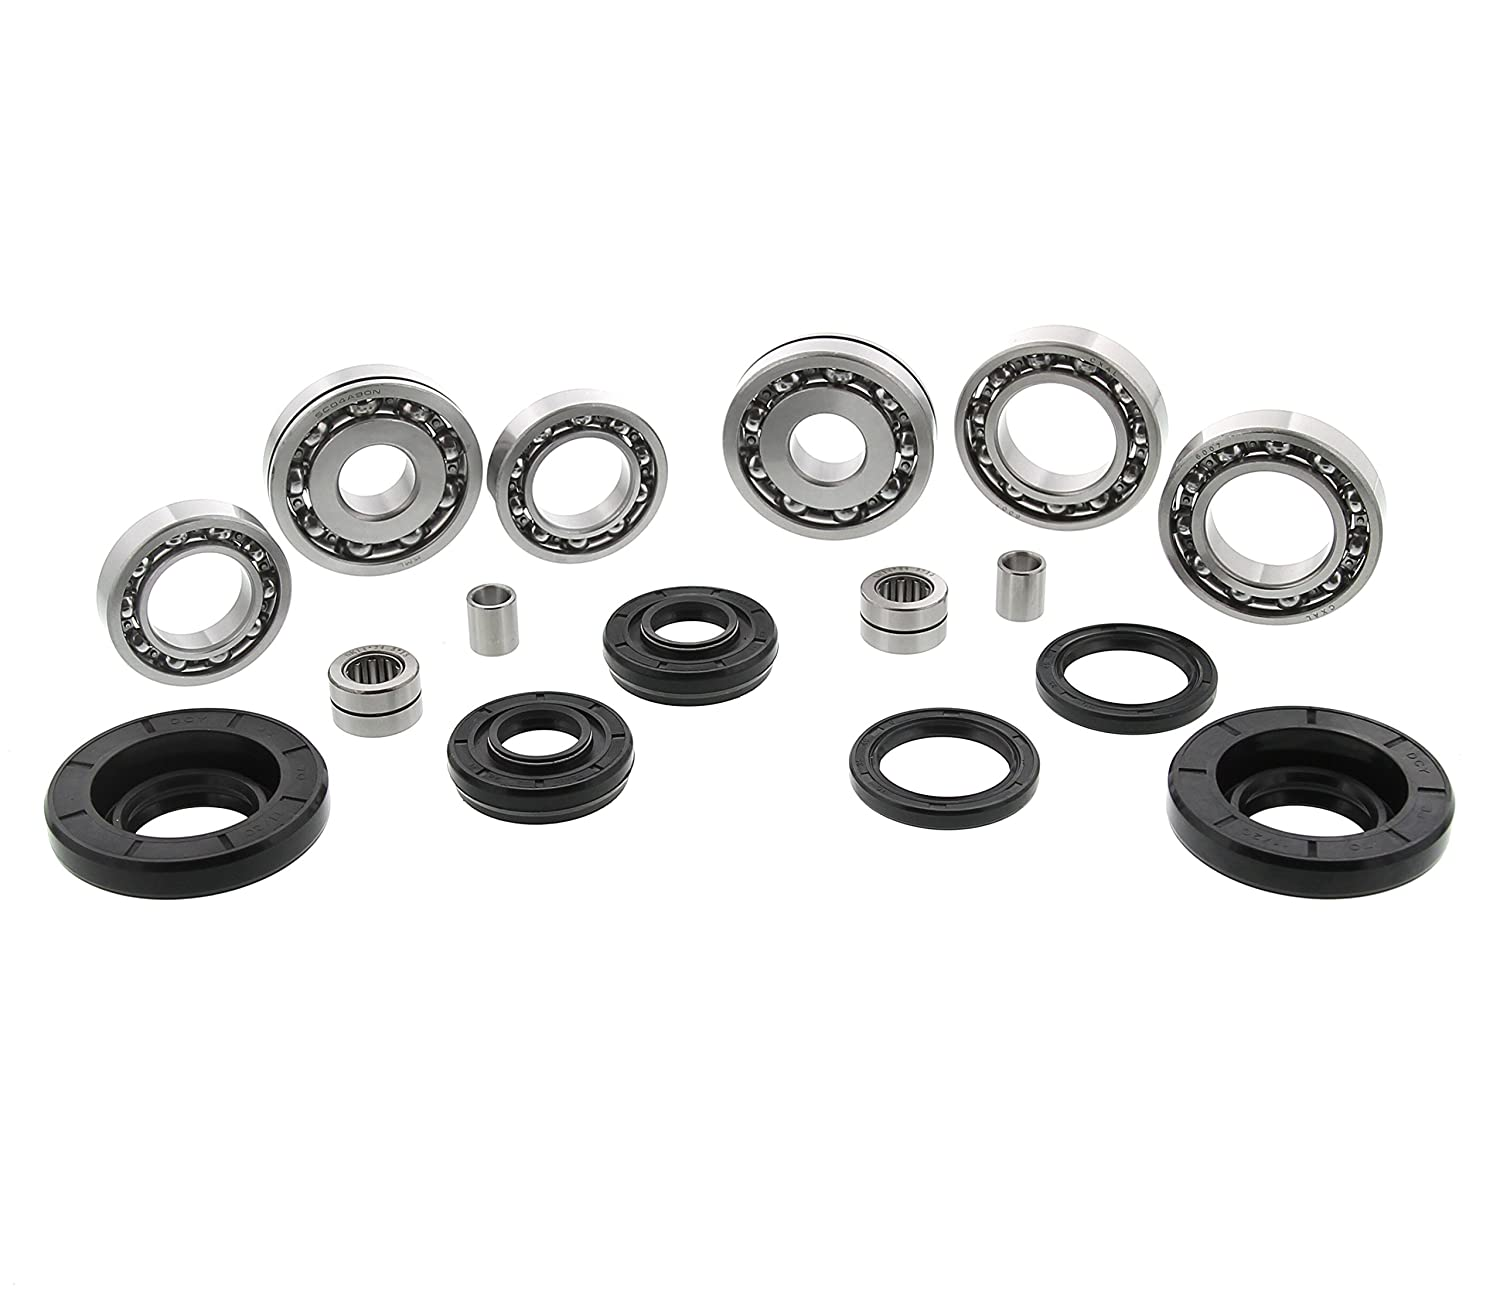 Honda Foreman 450ES /& 450S 1998-2001 Rear Differential Bearing and Seal Kit